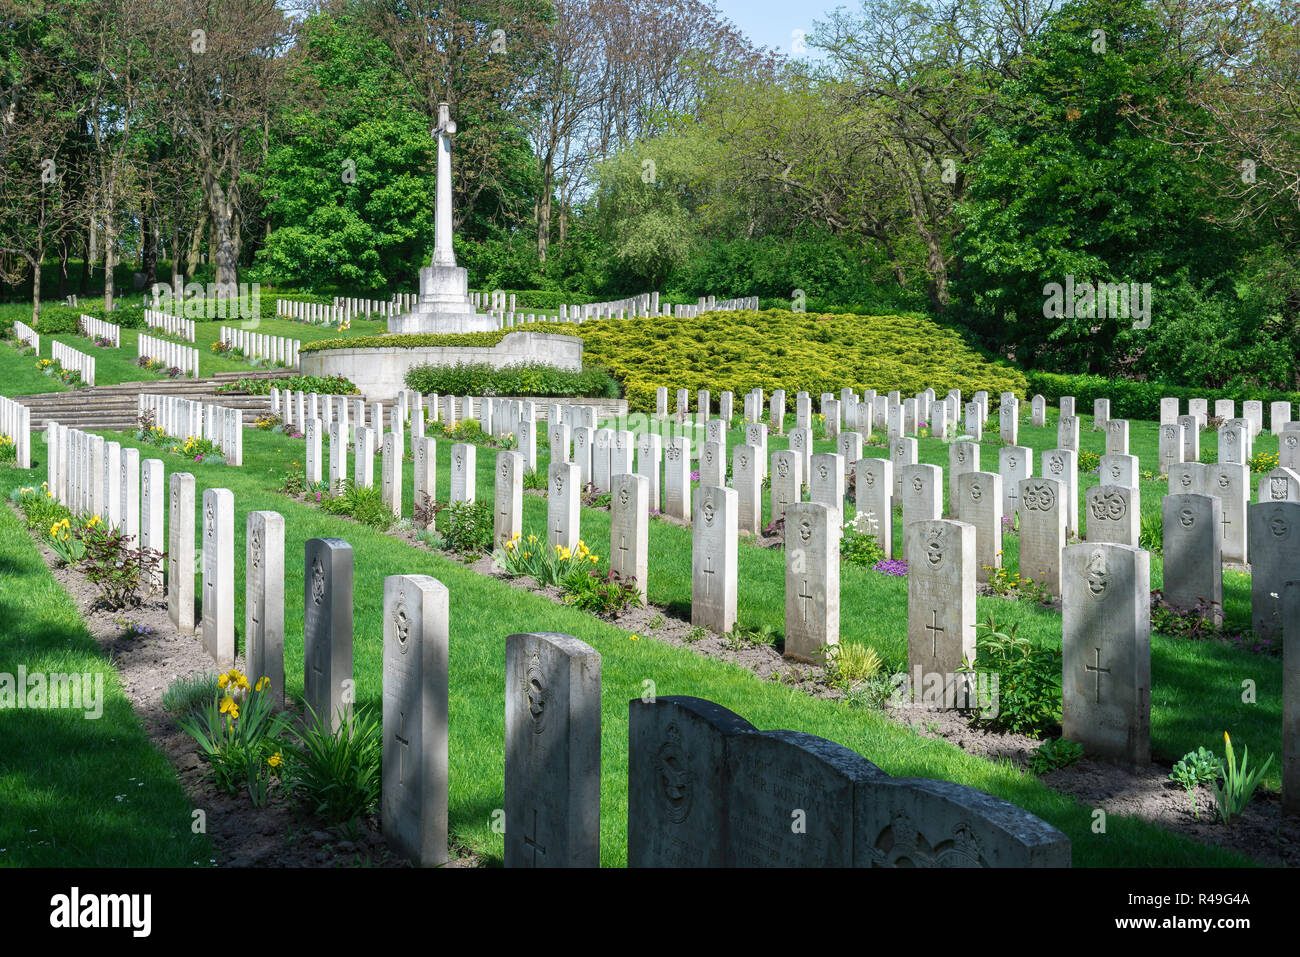 British war grave, view of headstones of British soldiers who fought in two world wars in the Garrison Cemetery in Poznan (Posen), Poland Stock Photo